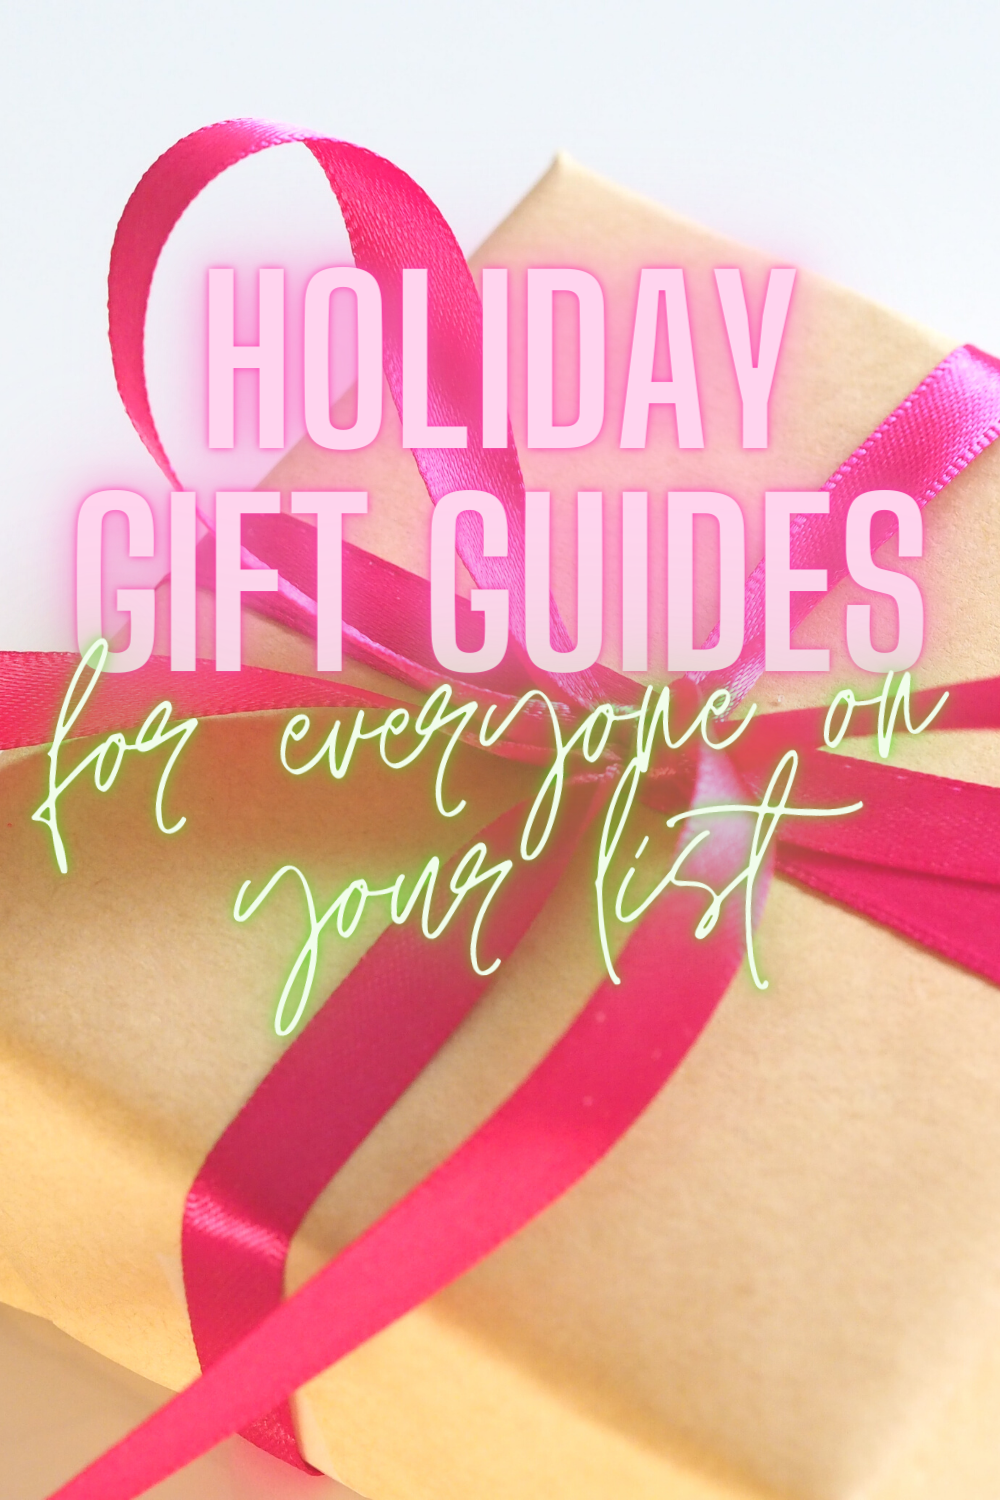 HOLIDAY GIFT GUIDES FOR EVERYONE ON YOUR LIST THIS HOLIDAY SEASON: For Him, For Her, Stocking Stuffers and more!